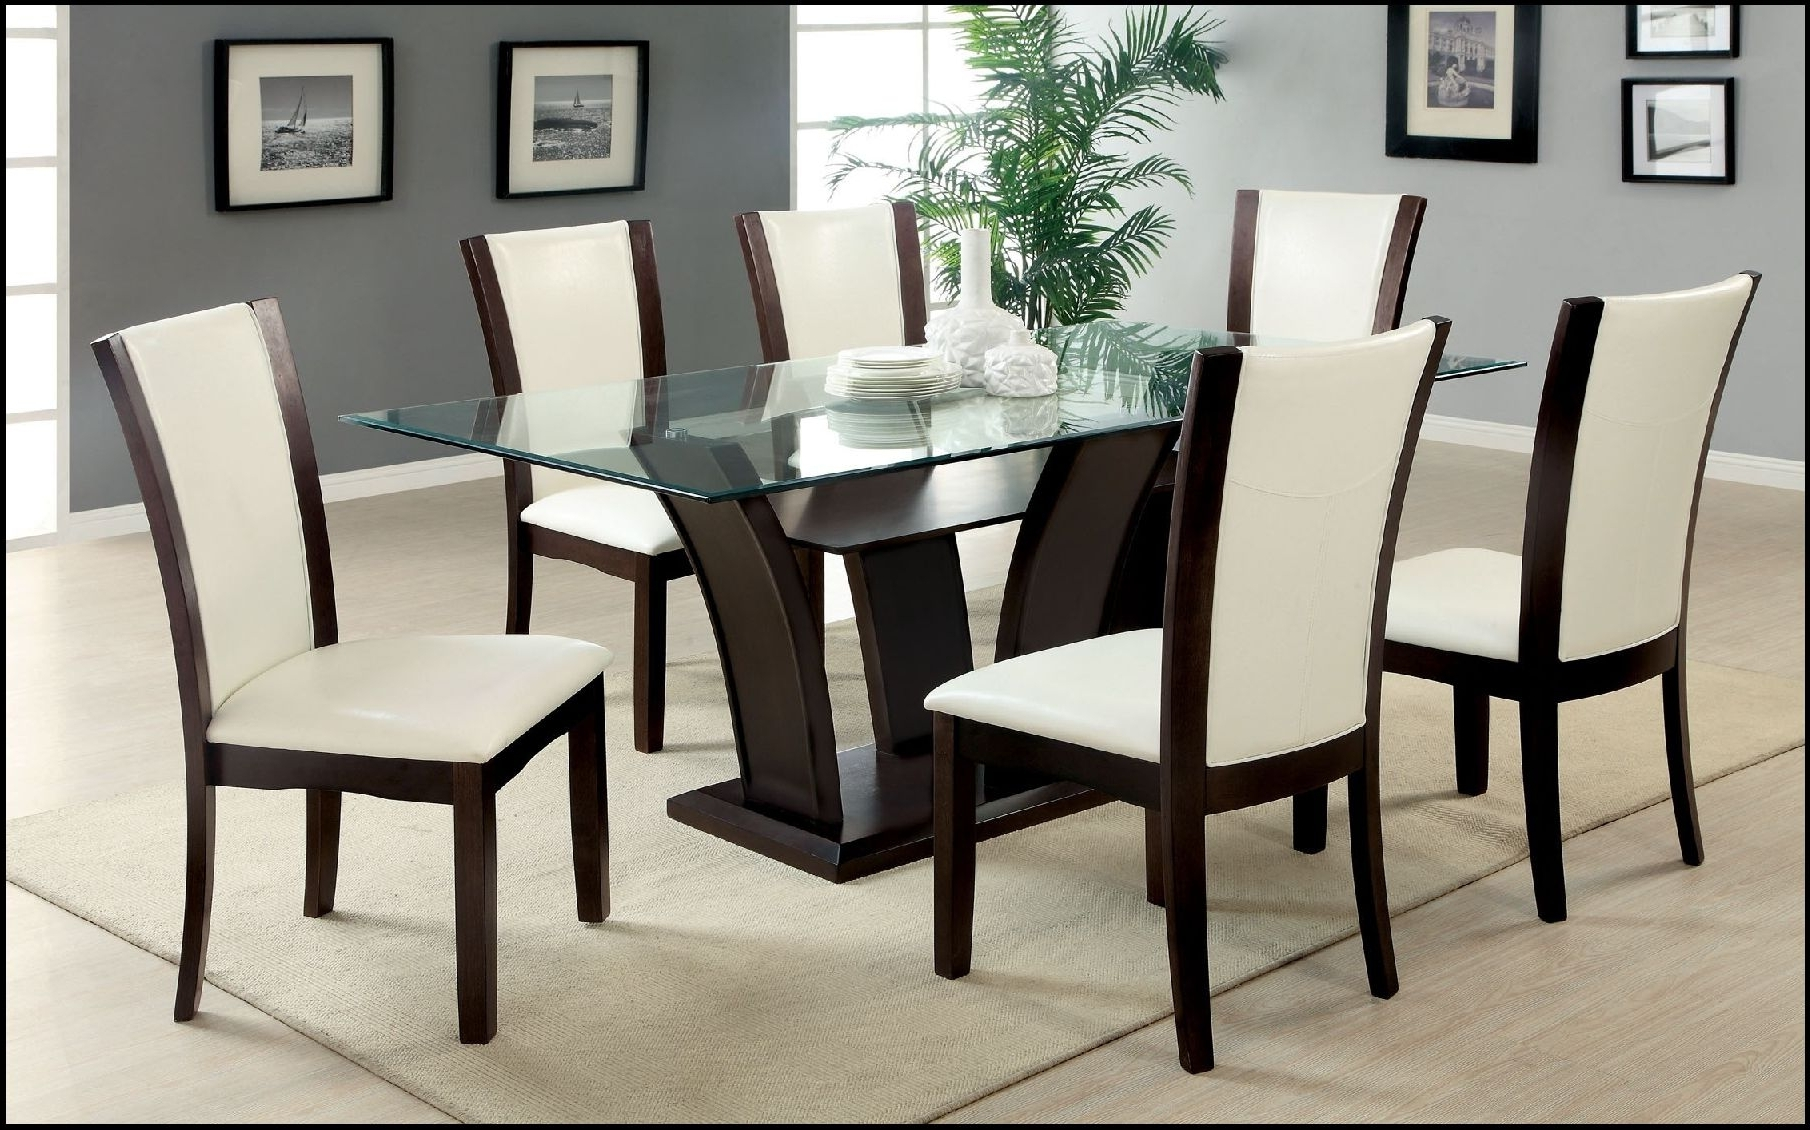 Trendy Dining Table Set 6 Seater Round And Chairs Six Kitchen 4 Stunning Throughout Dining Tables And 6 Chairs (View 23 of 25)